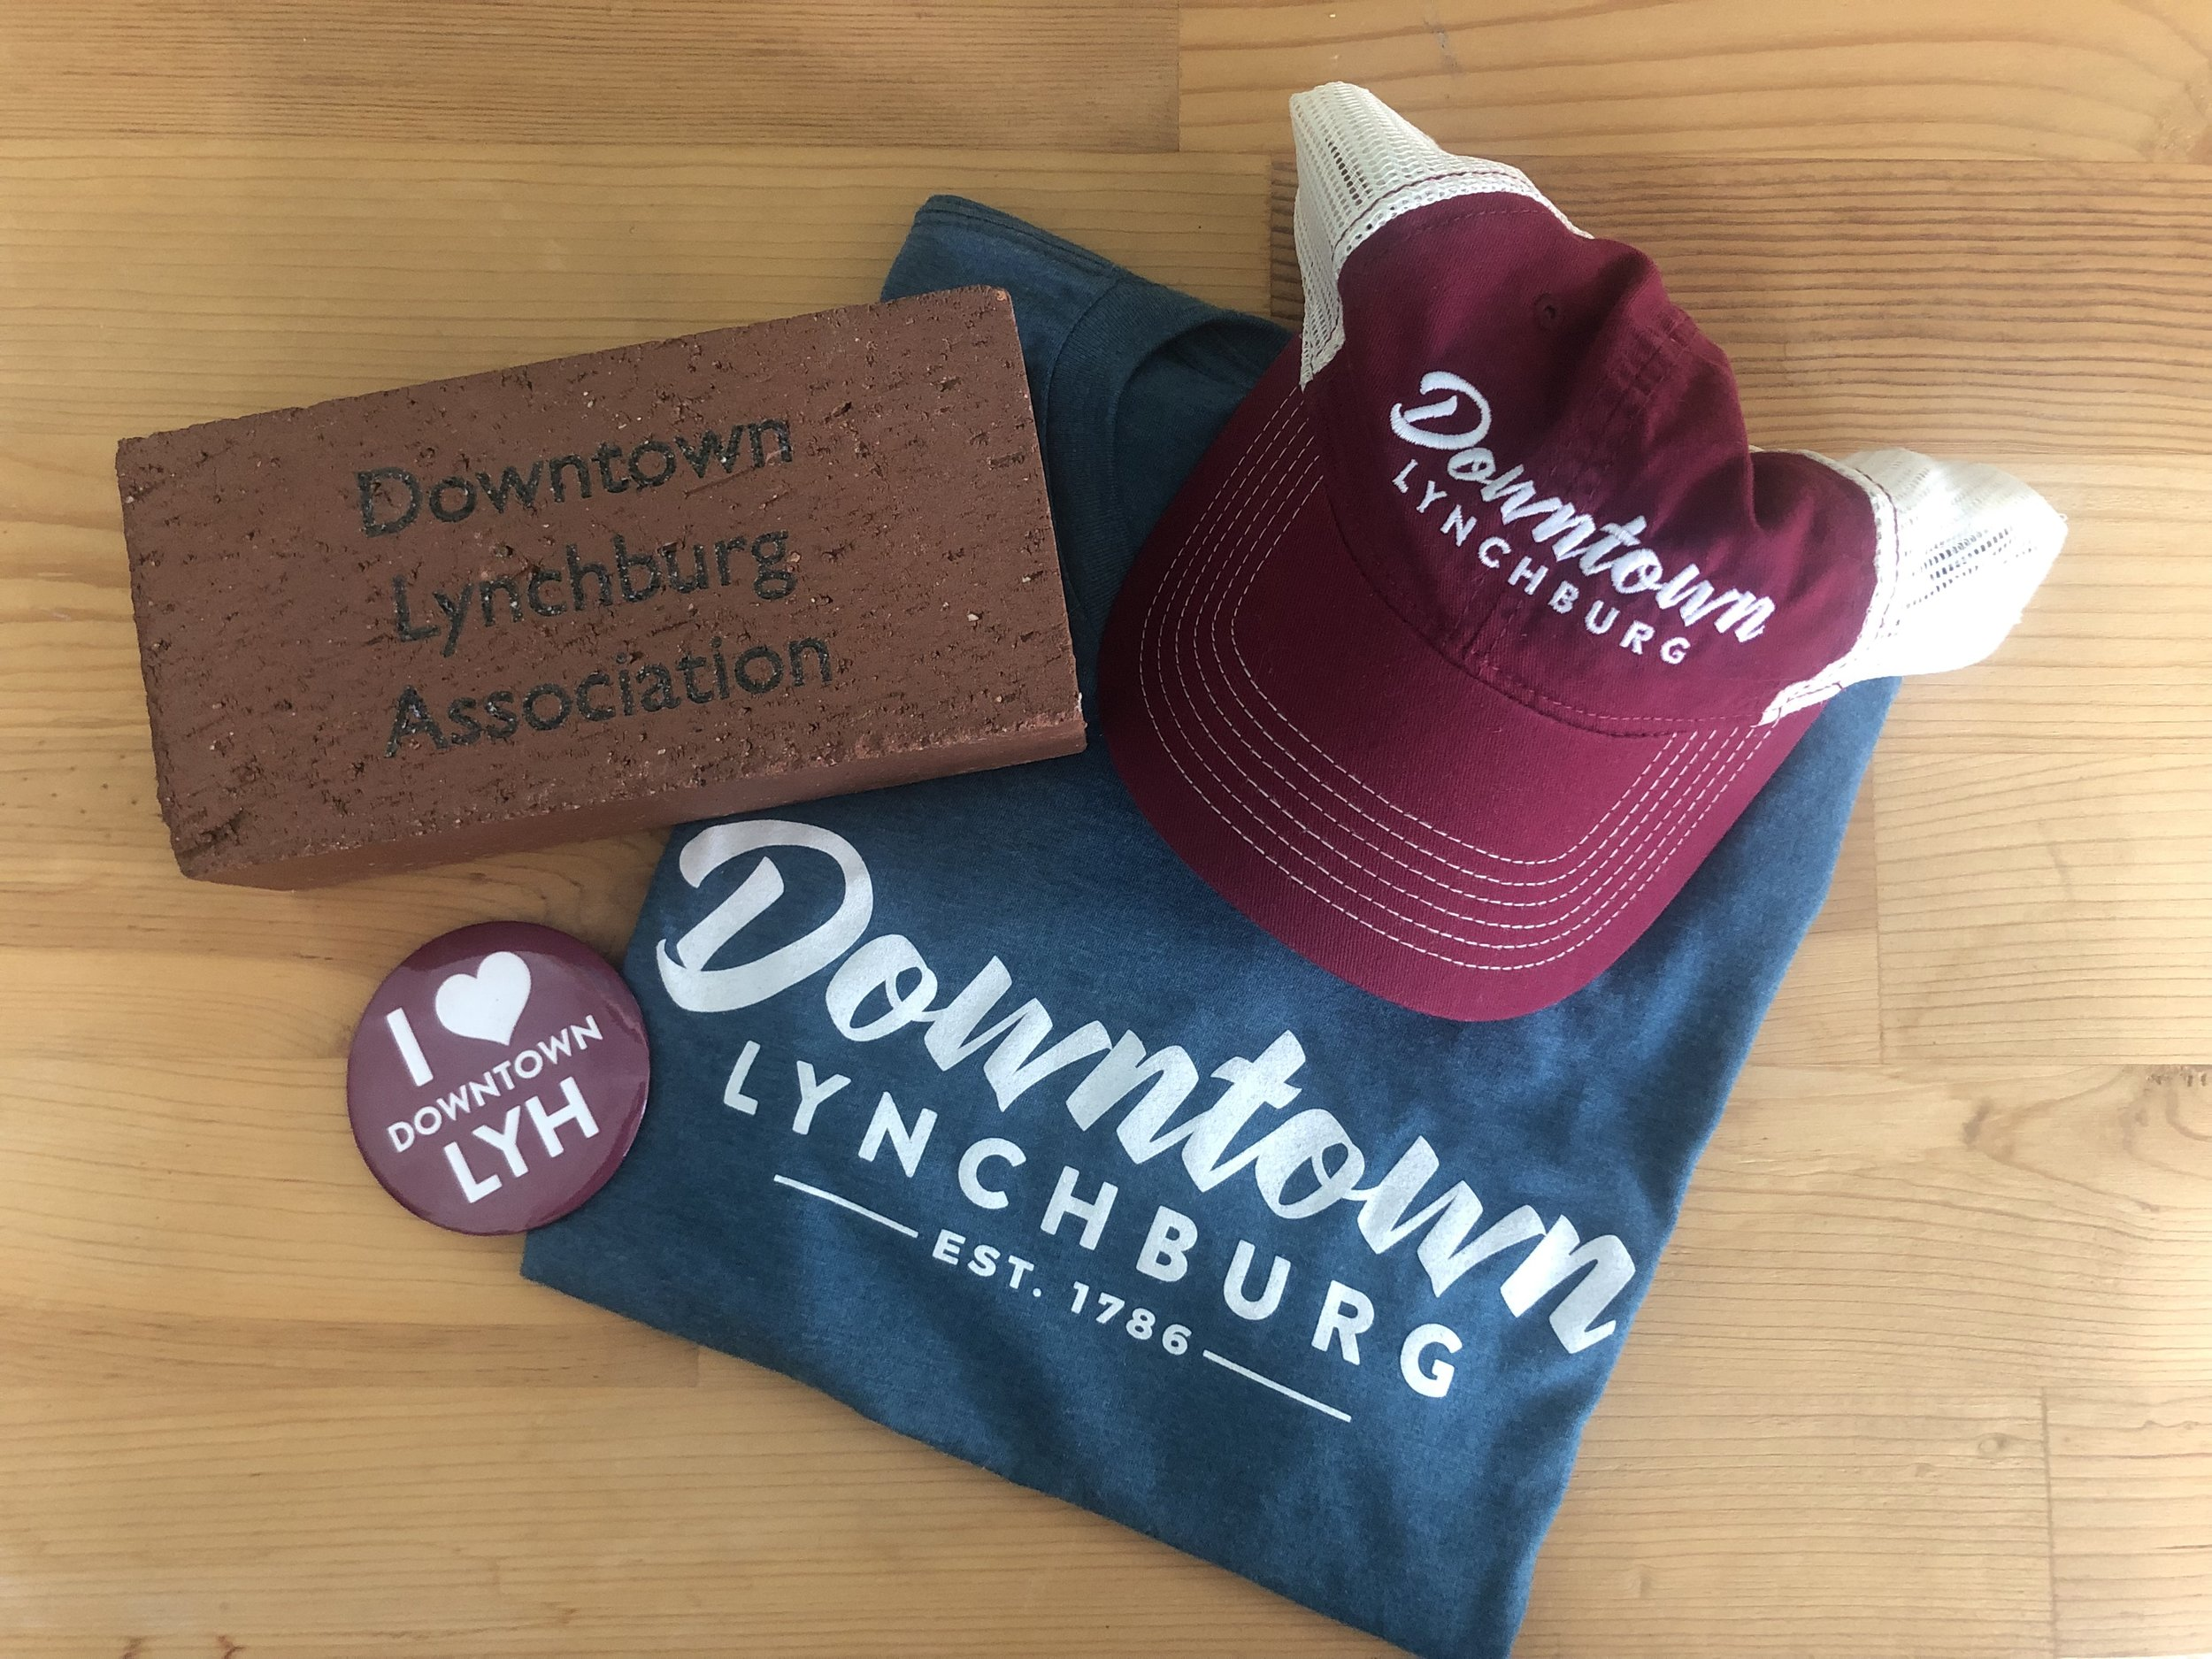 DLA Swag Pack - Make your mark on Downtown Lynchburg with your very own 4x8 brick on the Bluffwalk. Top it off with your choice of shirt and hat to represent your city.WINNER: Julie McAuley-Gonzalez